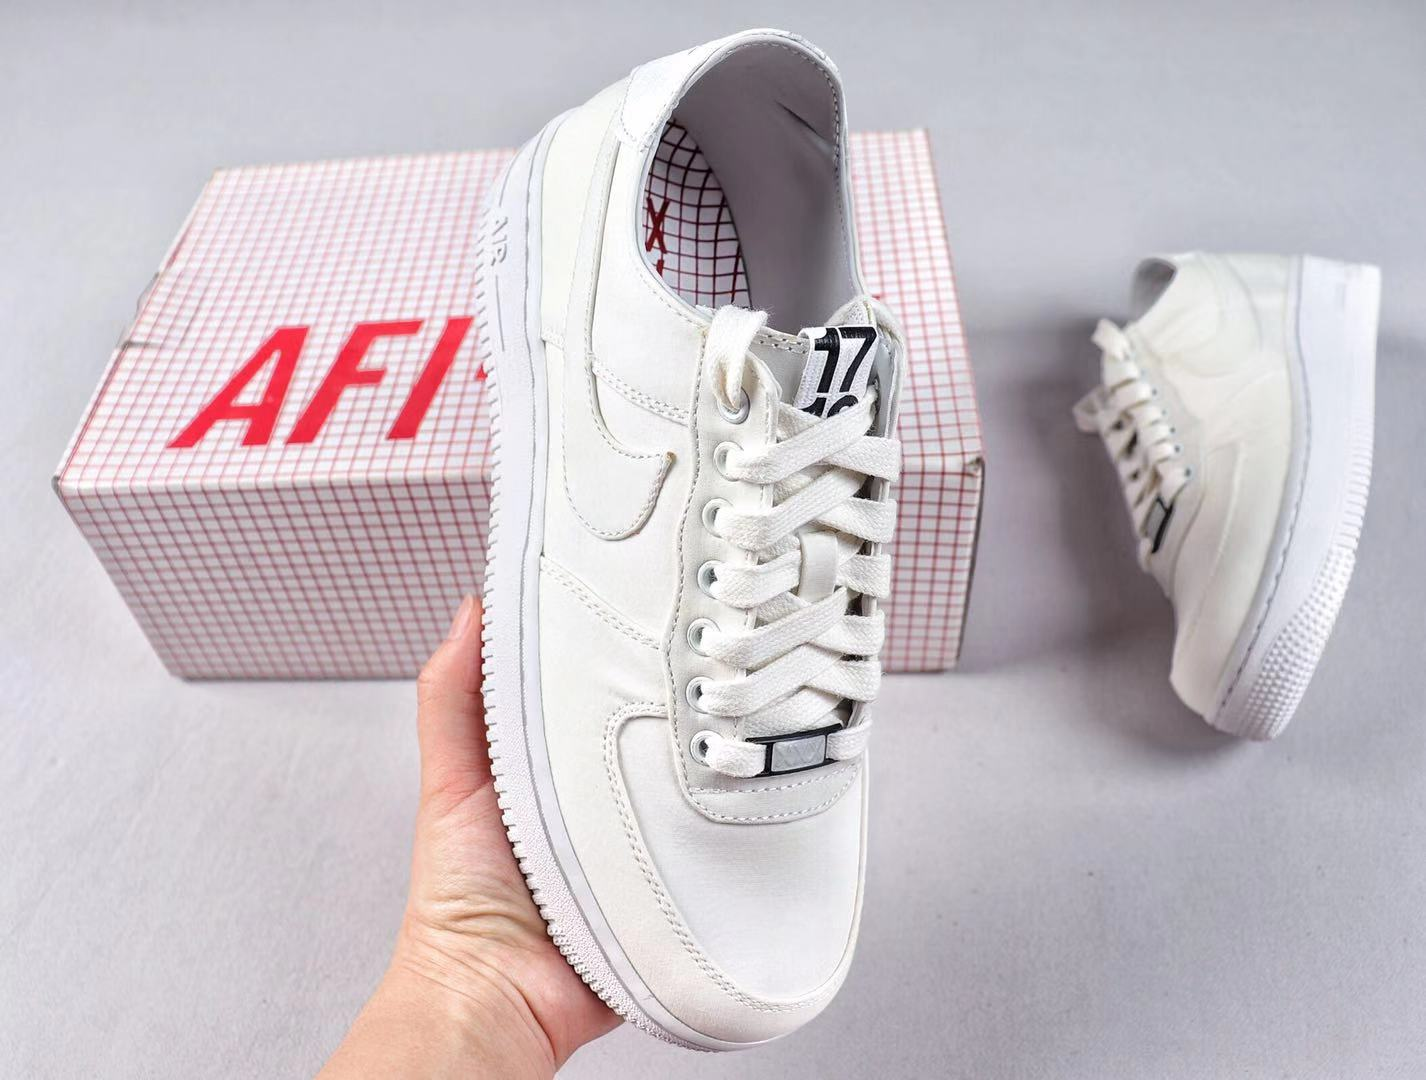 Nike Air Force 1 x Dover Street Market All White Best Sell Sneakers 543512-110